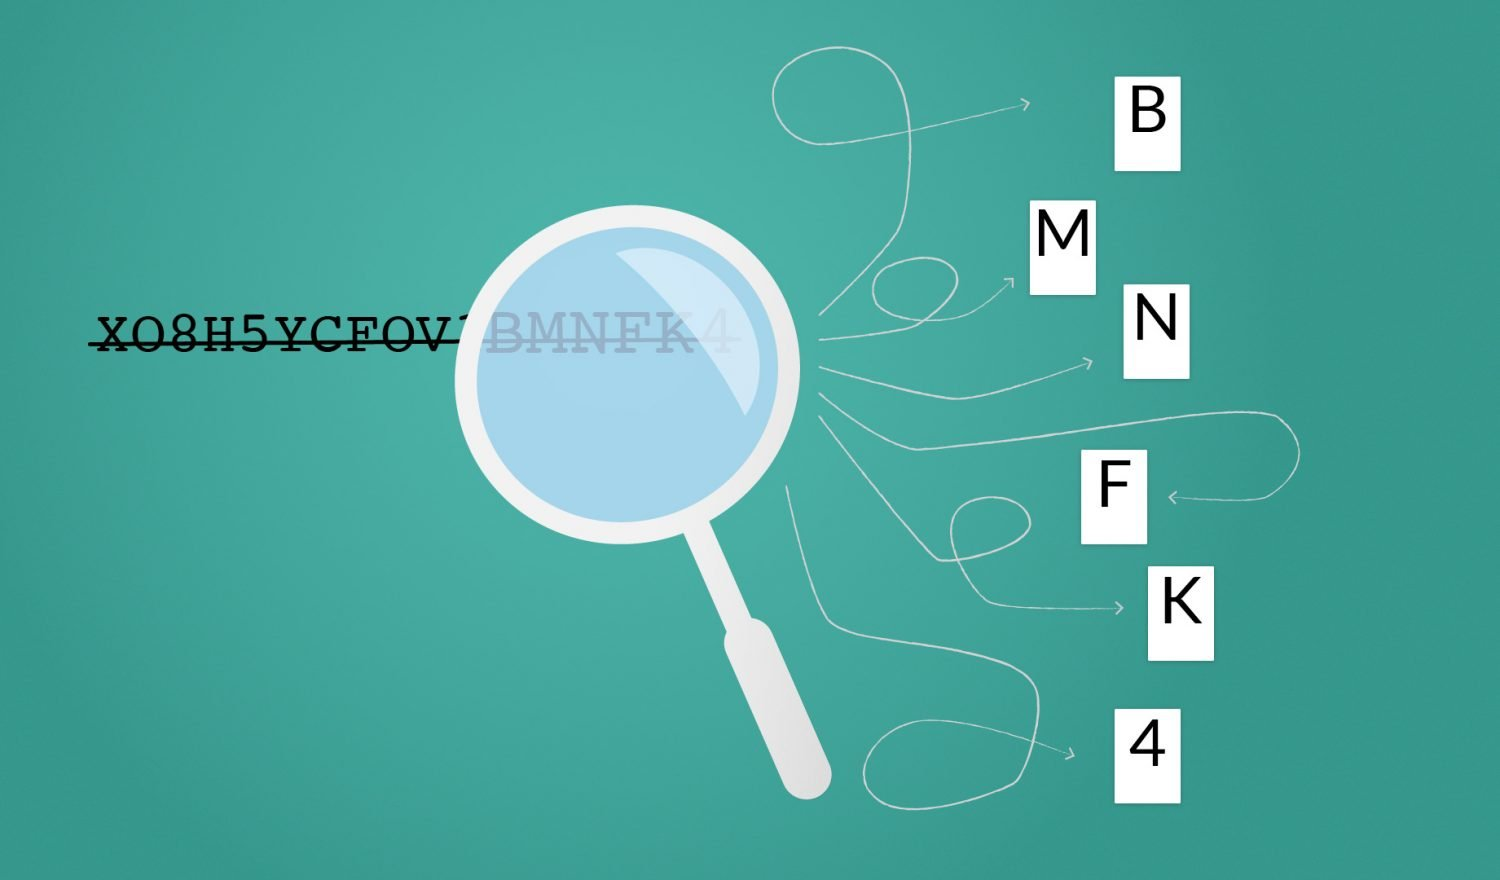 A magnifying glass recognizing letters